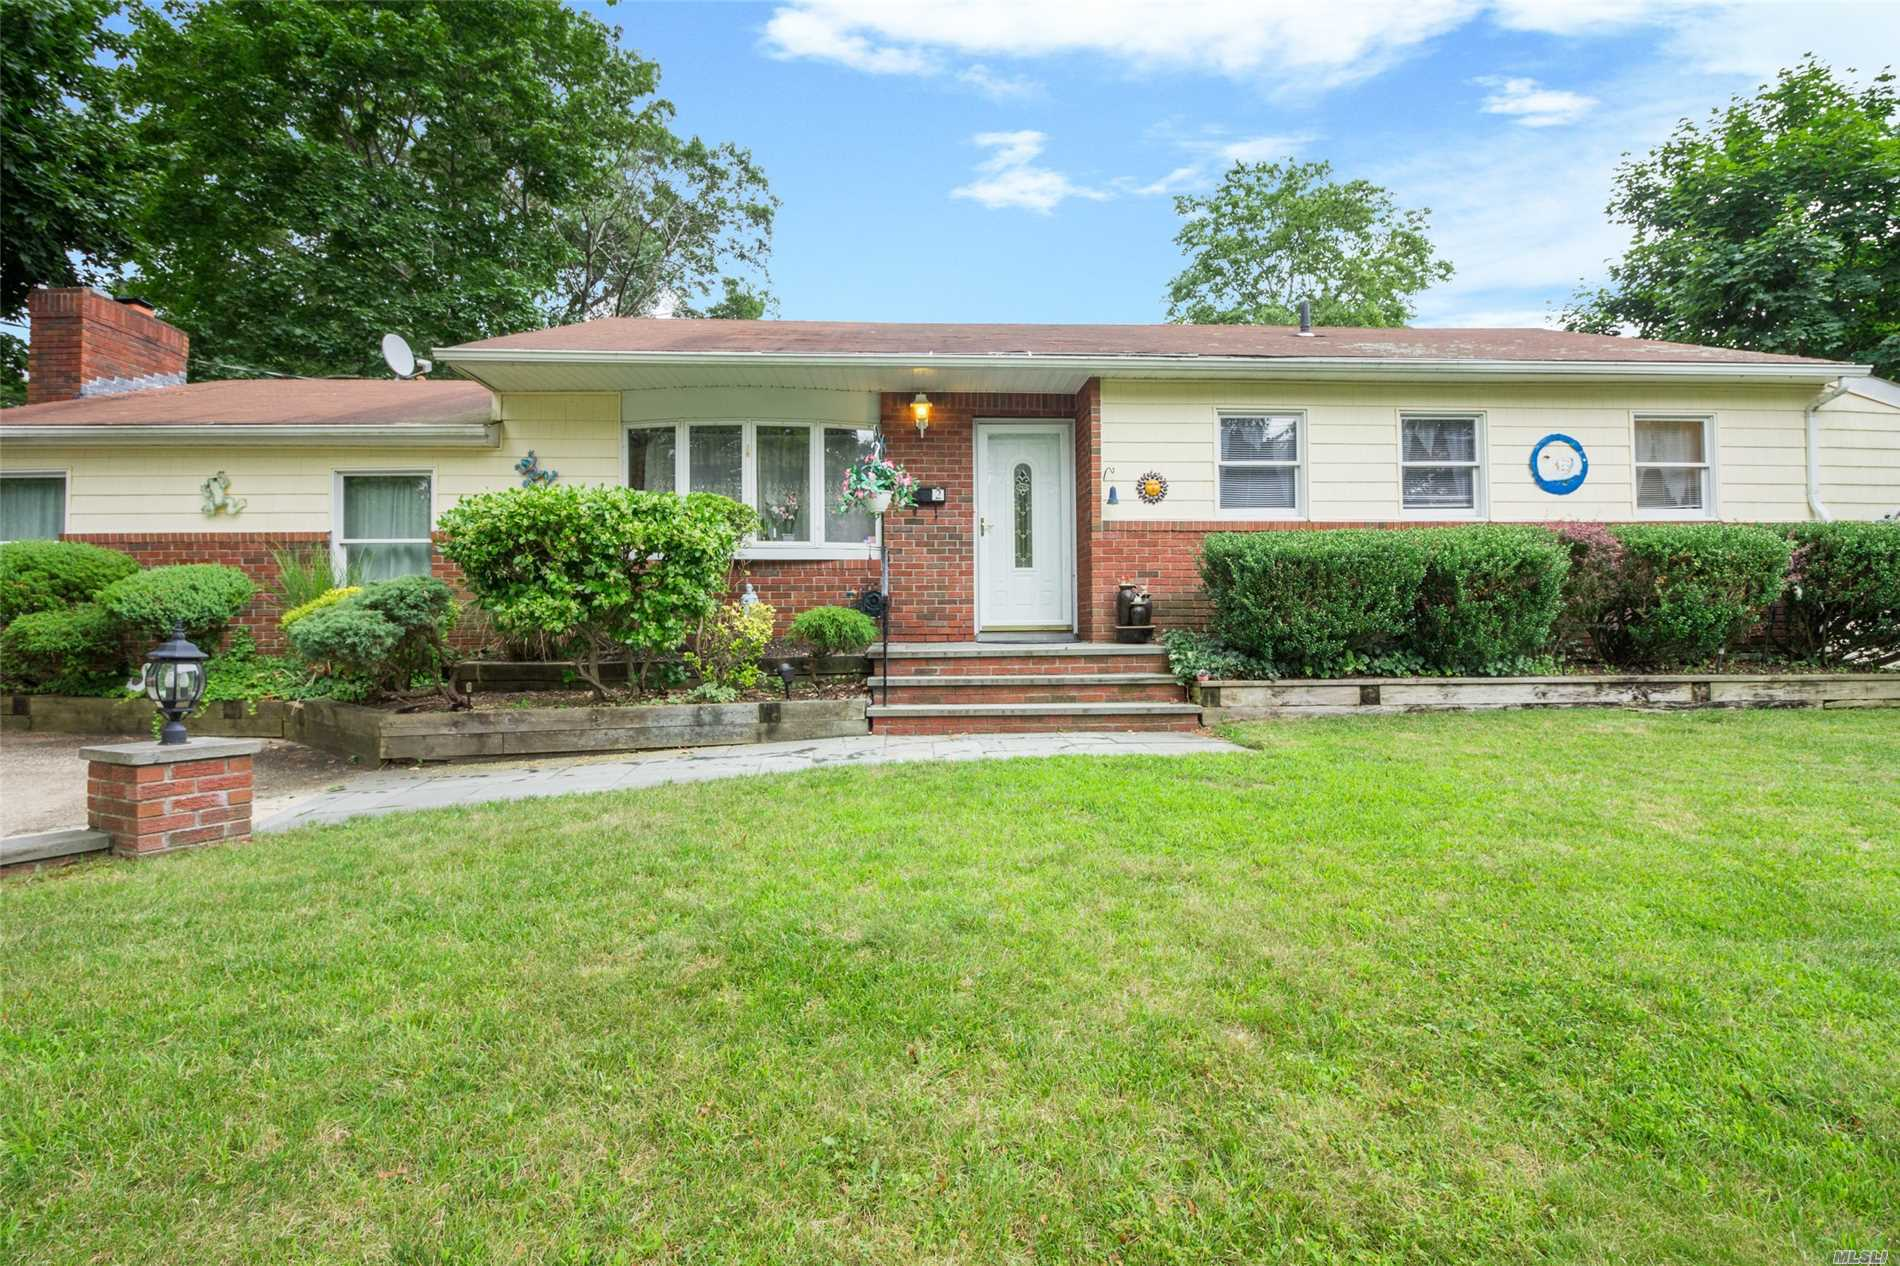 Expanded 3 Bedroom Ranch In Lovely Neighborhood In Award Winning Elwood School District. 3 Bedroom, 2 Bath, Lr, Dr, Family Room, Eik, Wood Floors, Shed, Flat Property, Upgraded Electric, Anderson Windows 12 Years, New Liner In In Ground Pool.